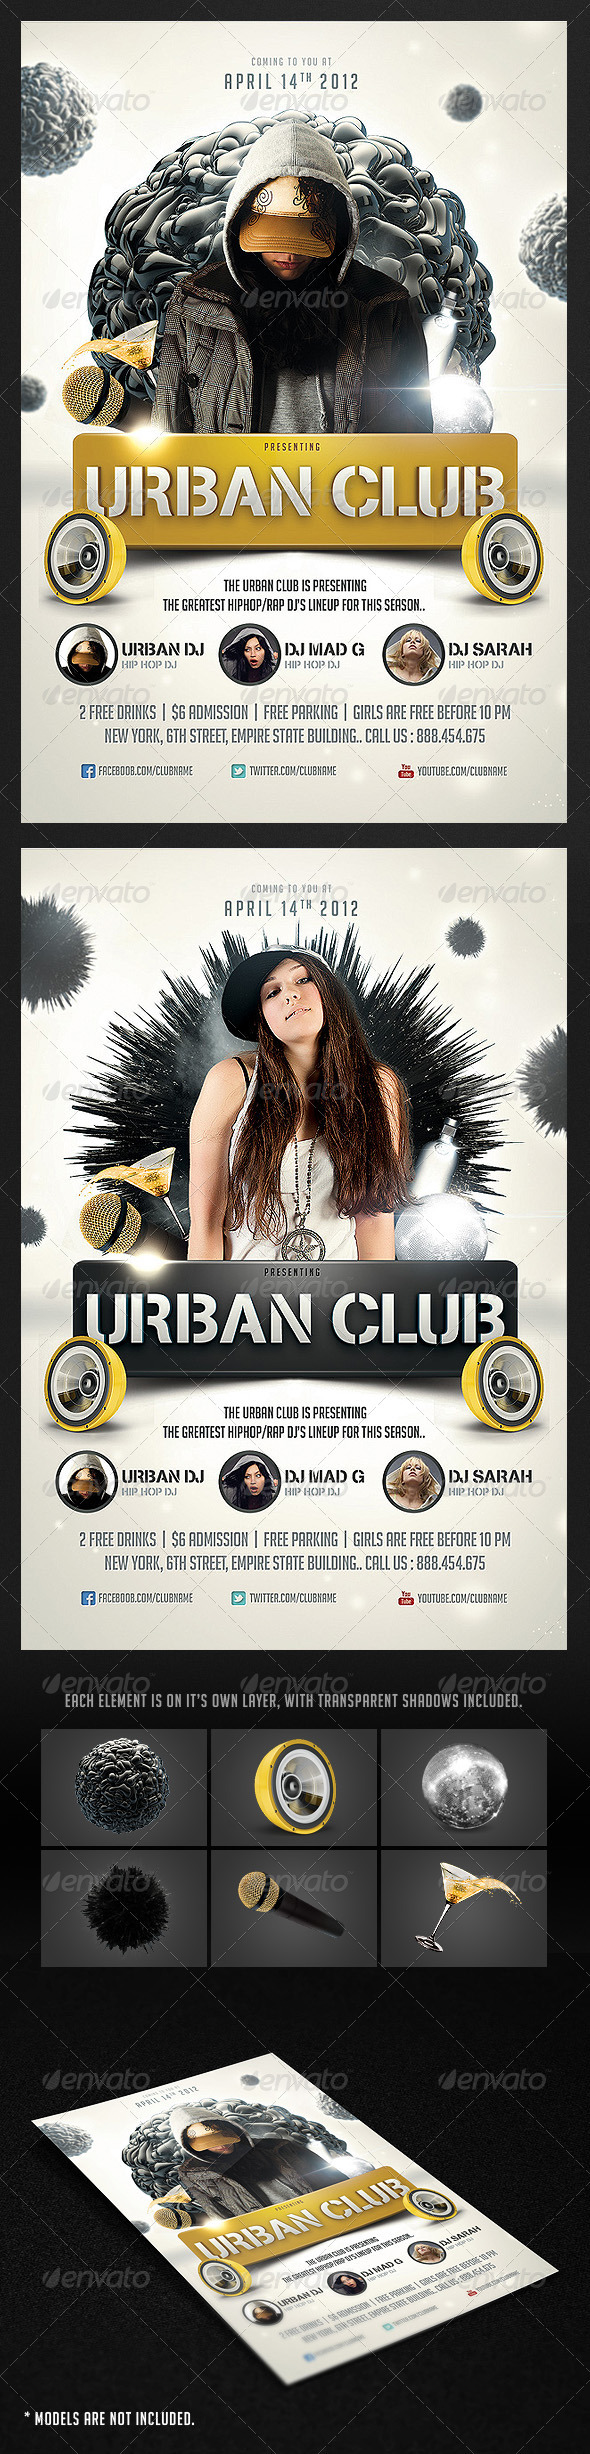 Urban Club Flyer - Clubs & Parties Events